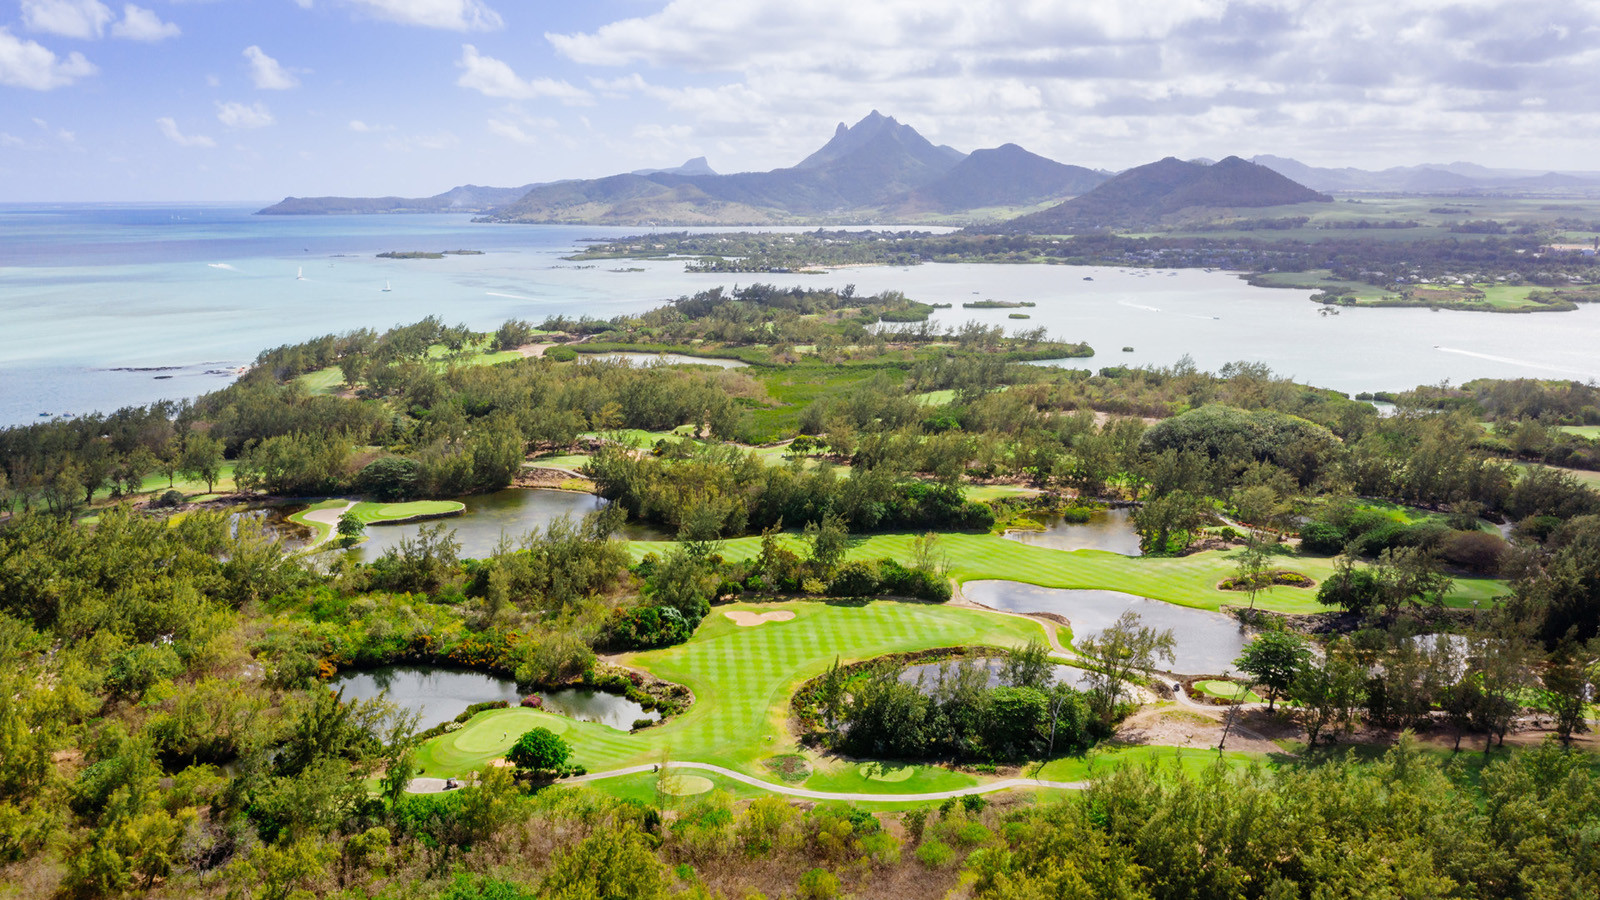 news-main-four-seasons-resort-mauritius-at-anahita-october-1-2021-marks-the-destinations-border-reopening-for-quarantine-free-stays-for-fully-vaccinated-travellers.1633270657.jpg